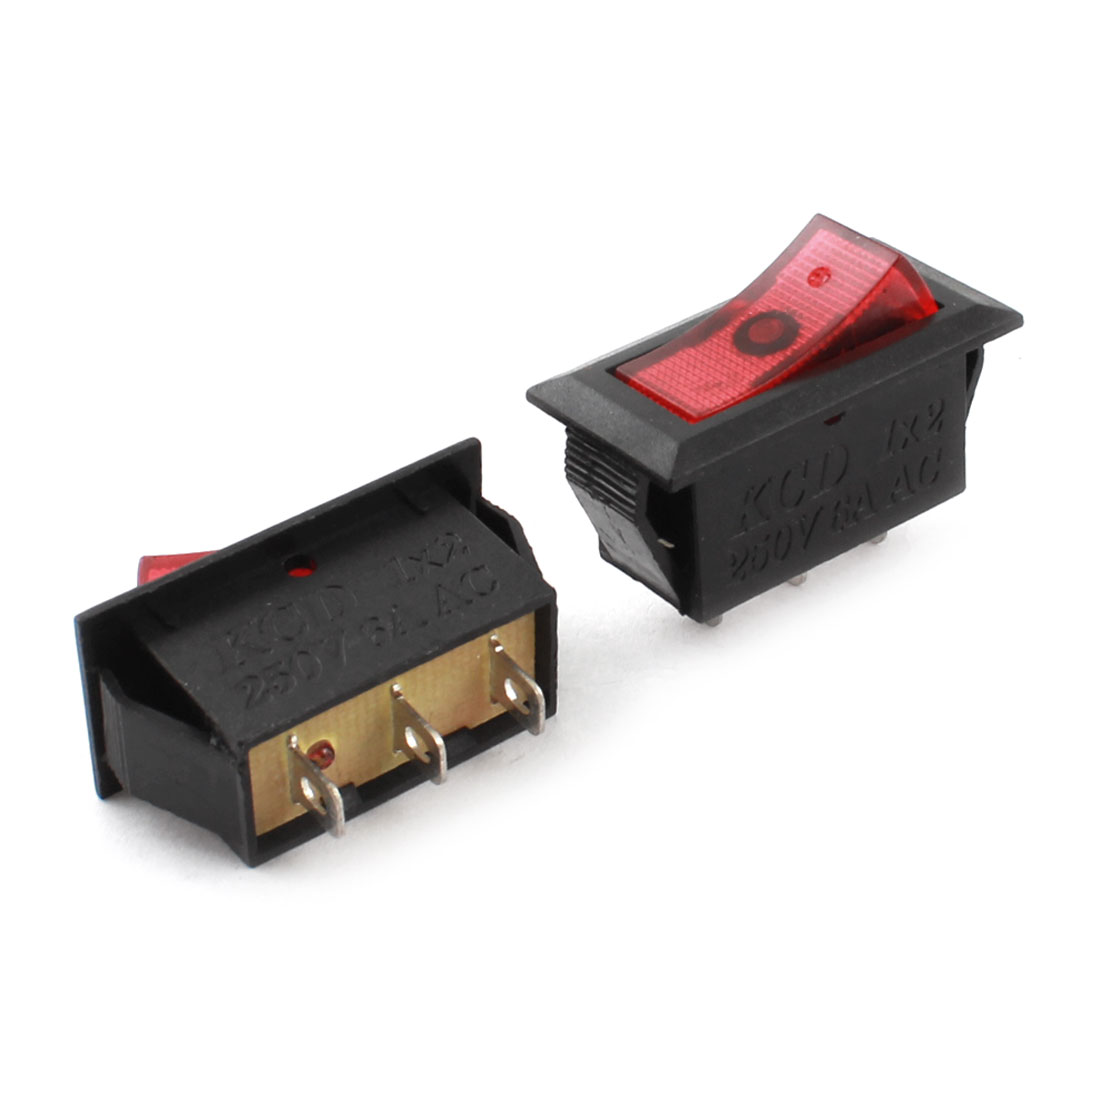 2 Pcs SPDT 3 Terminal Soldering 2Position ON/OFF Snap in Mount Boat Rocker Switches AC 250V 6A